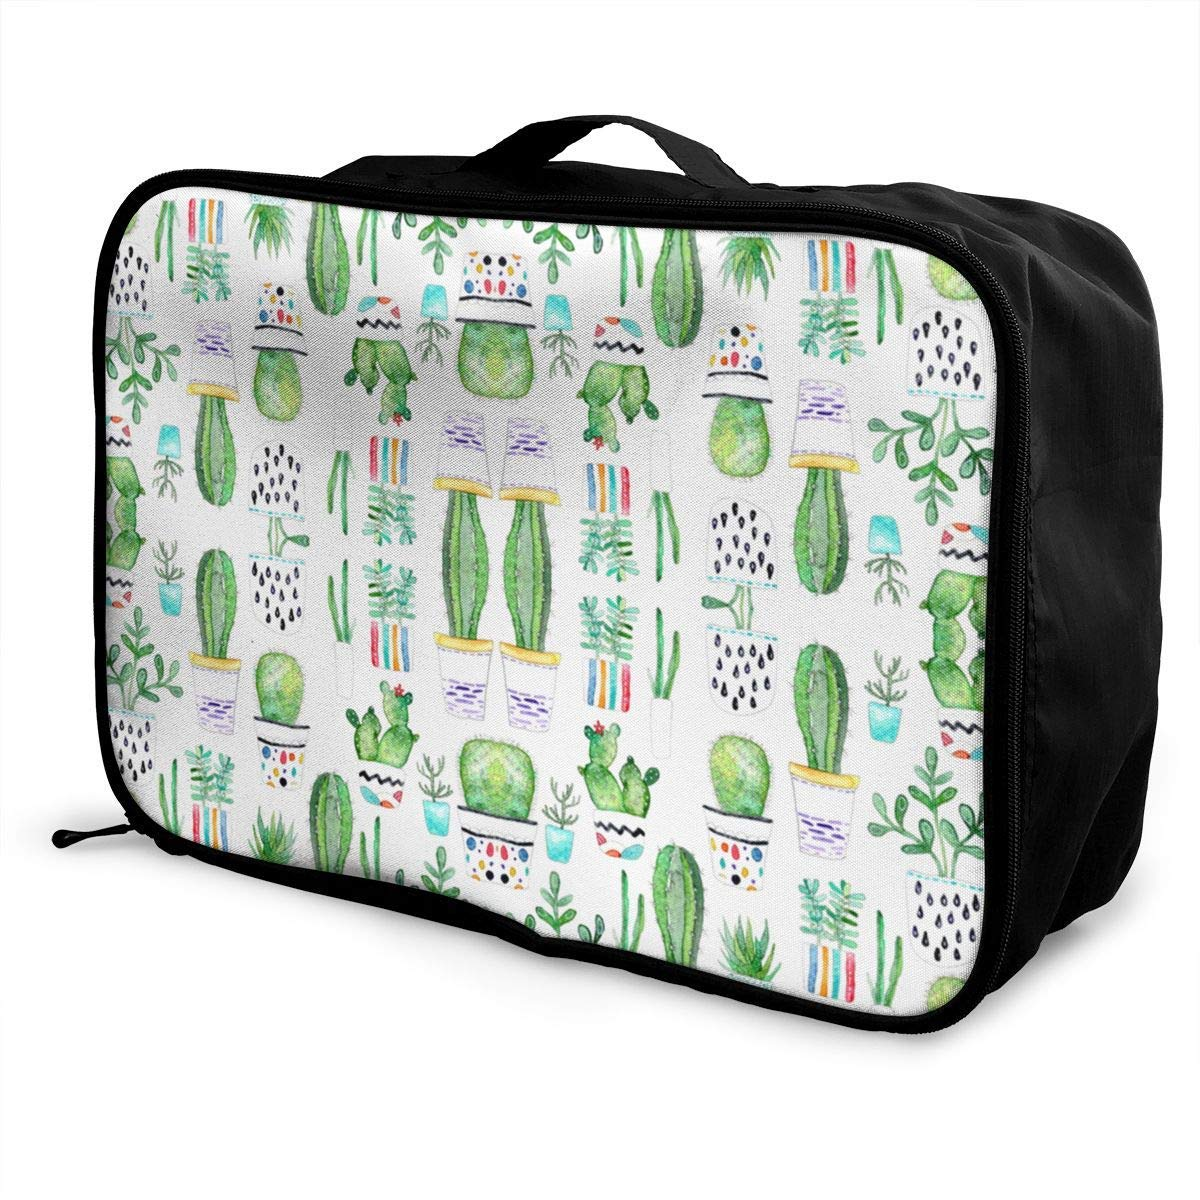 Travel Lightweight Waterproof Foldable Storage Carry Luggage Duffle Tote Bag JTRVW Luggage Bags for Travel Watercolour Succulents Cactus